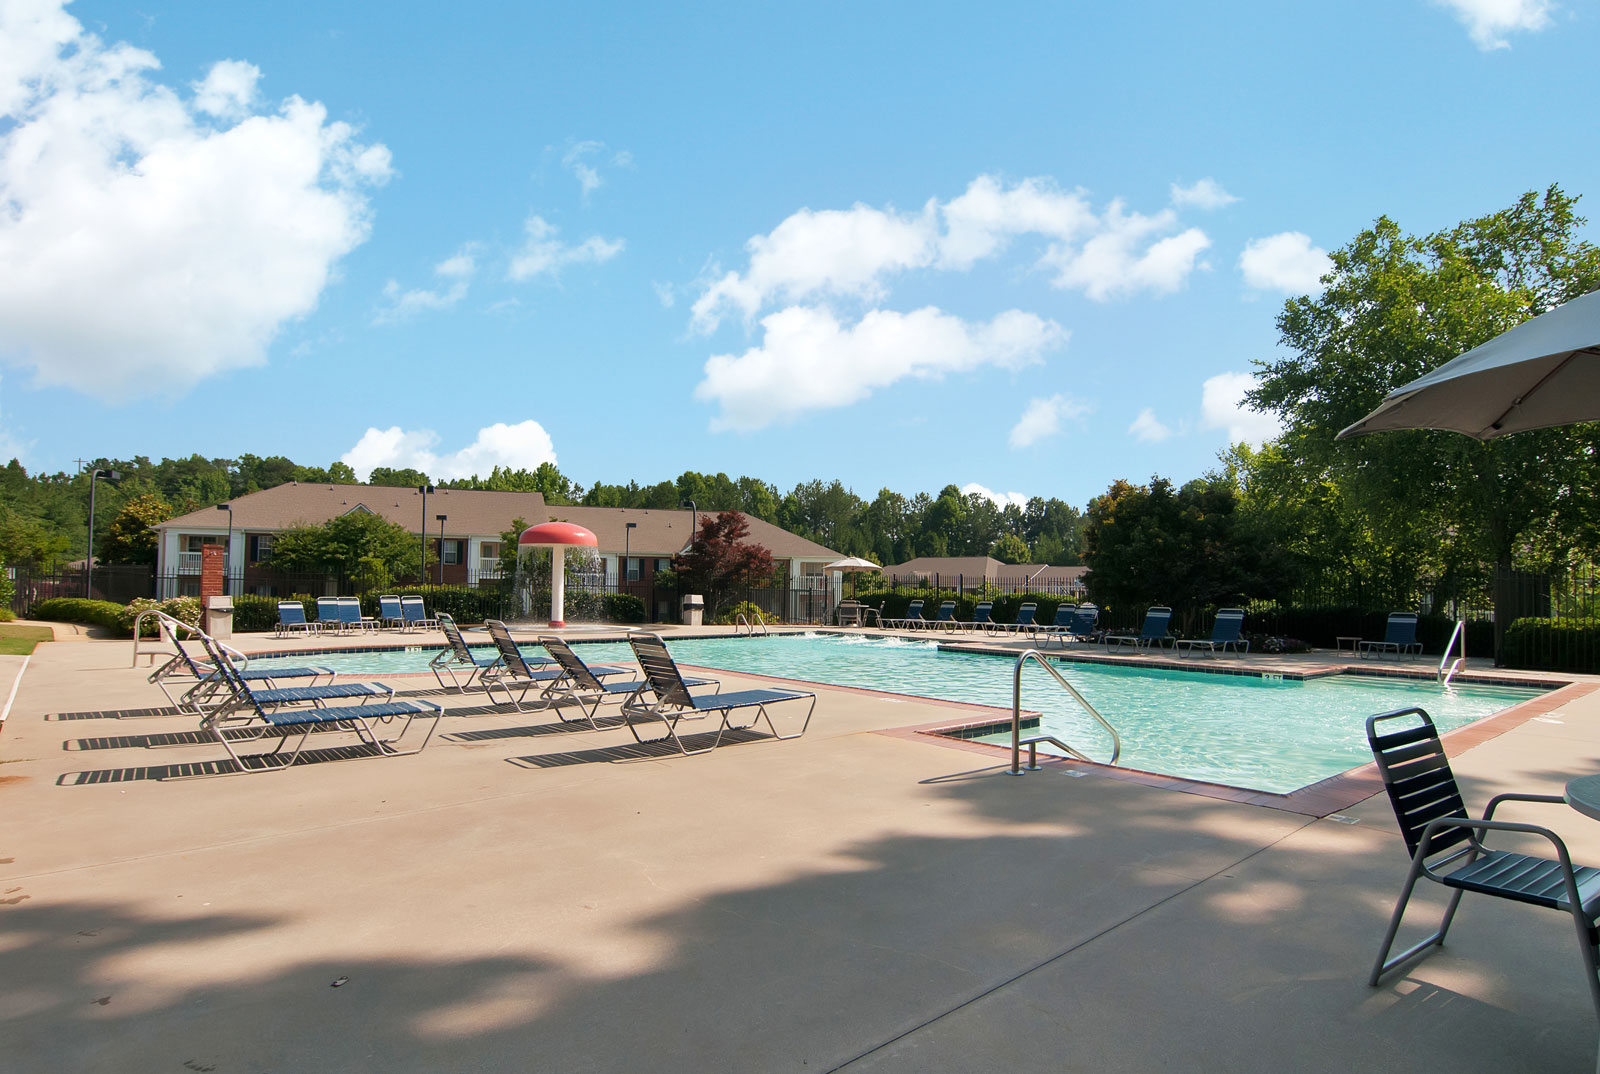 Apartments in Dallas with a swimming pool